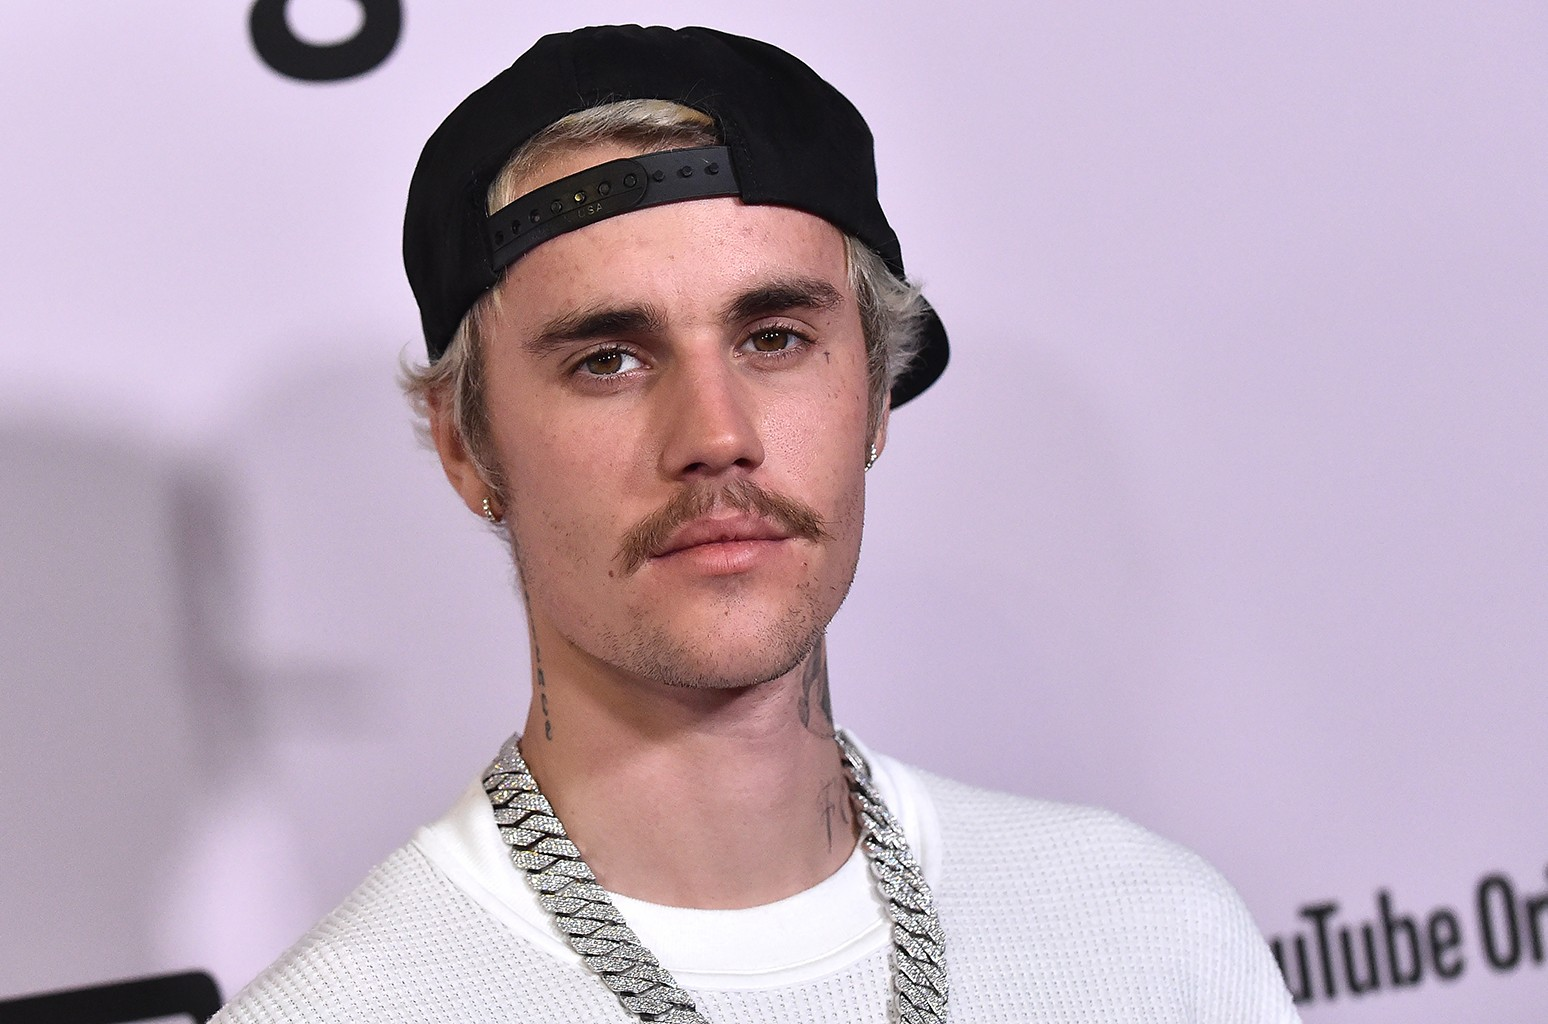 Justin Bieber Denies Sexual Assault Allegations, Plans to Take Legal Action